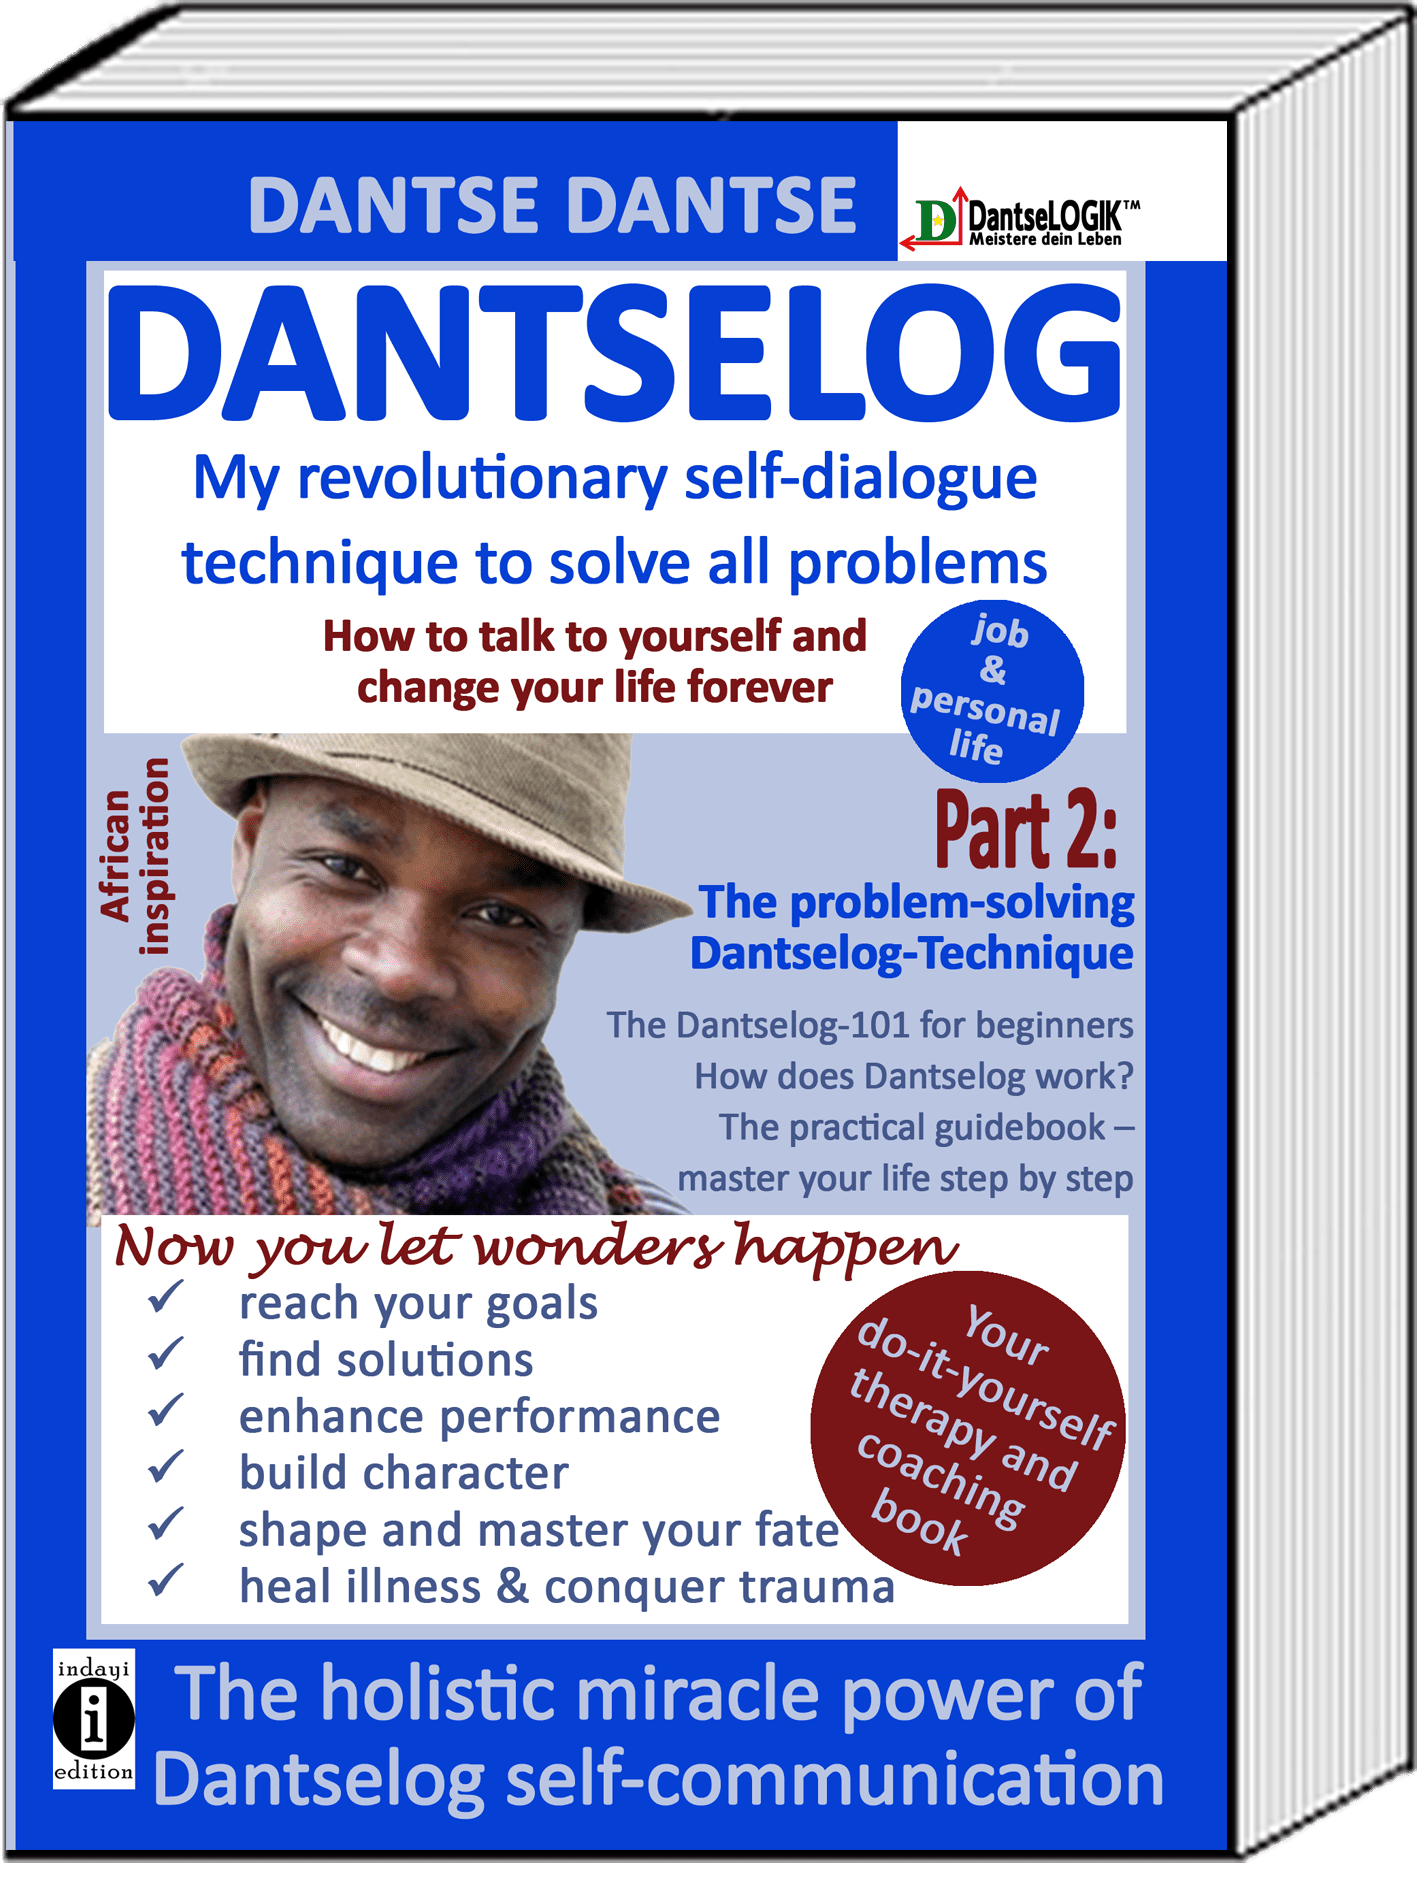 DANTSELOG - My revolutionary self-dialogue communication to solve all problems - How to talk to yourself and change your life forever. Part 2: The problem-solving Dantselog-Technique The Dantselog-101 for beginners